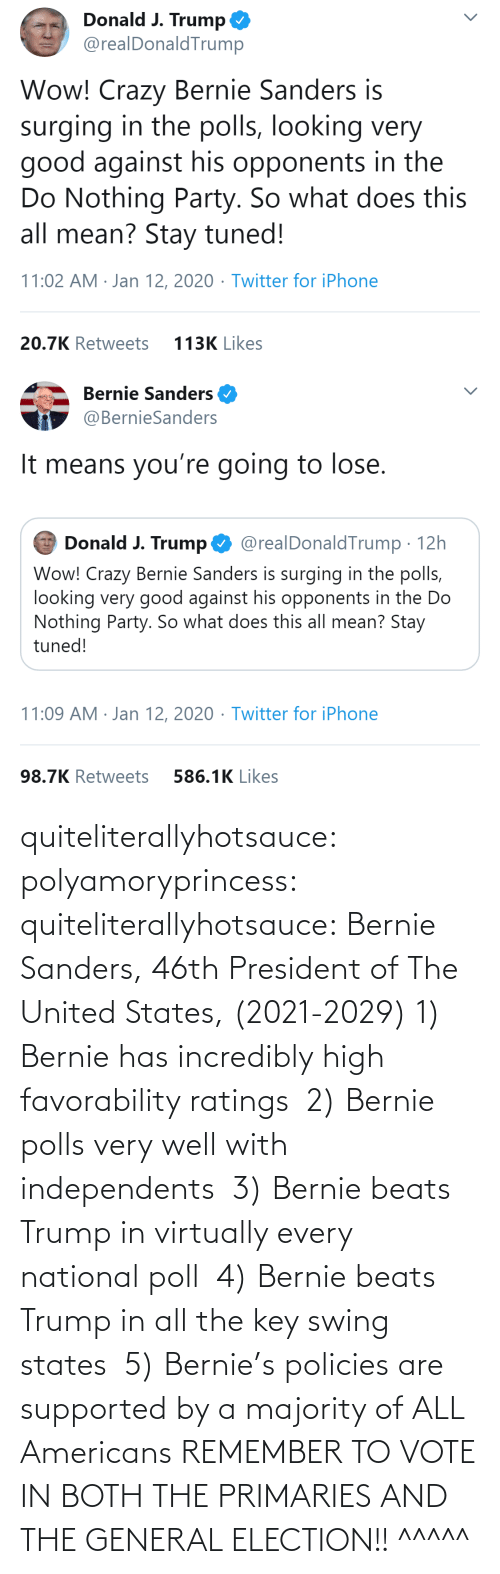 Every: quiteliterallyhotsauce:  polyamoryprincess:  quiteliterallyhotsauce:   Bernie Sanders, 46th President of The United States, (2021-2029)    1) Bernie has incredibly high favorability ratings  2) Bernie polls very well with independents  3) Bernie beats Trump in virtually every national poll  4) Bernie beats Trump in all the key swing states  5) Bernie's policies are supported by a majority of ALL Americans    REMEMBER TO VOTE IN BOTH THE PRIMARIES AND THE GENERAL ELECTION!!  ^^^^^